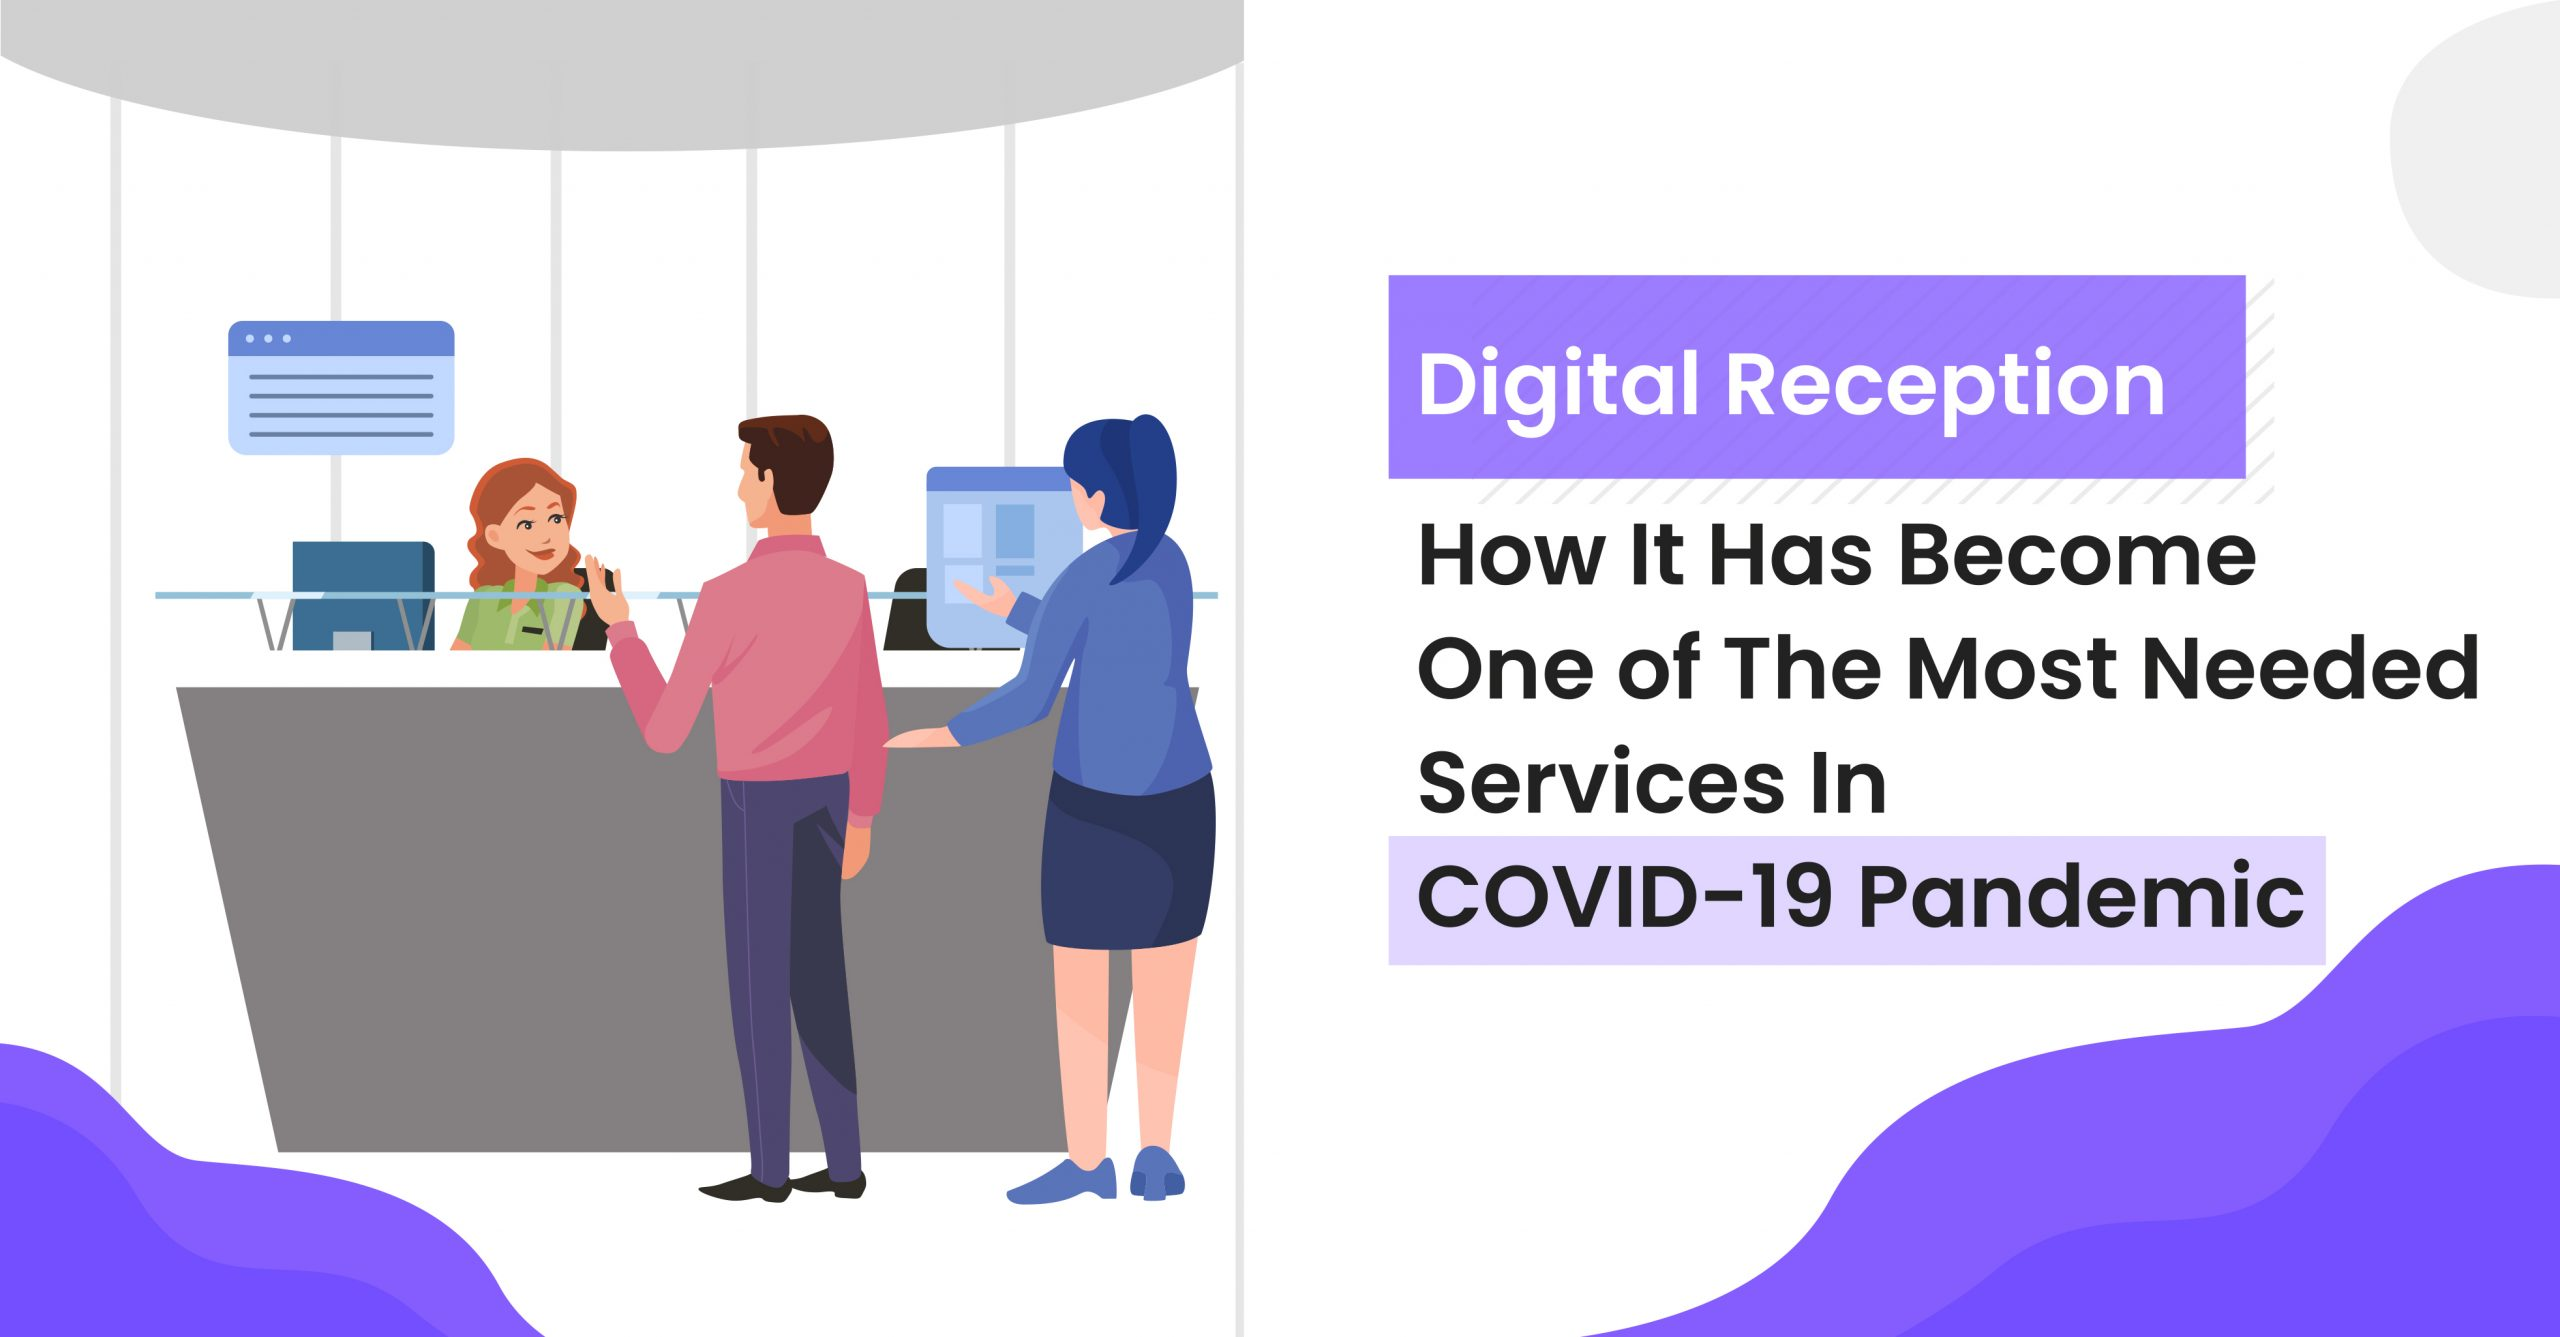 Digital Reception – How It Has Become One of The Most Needed Services in Covid – 19 Pandemic